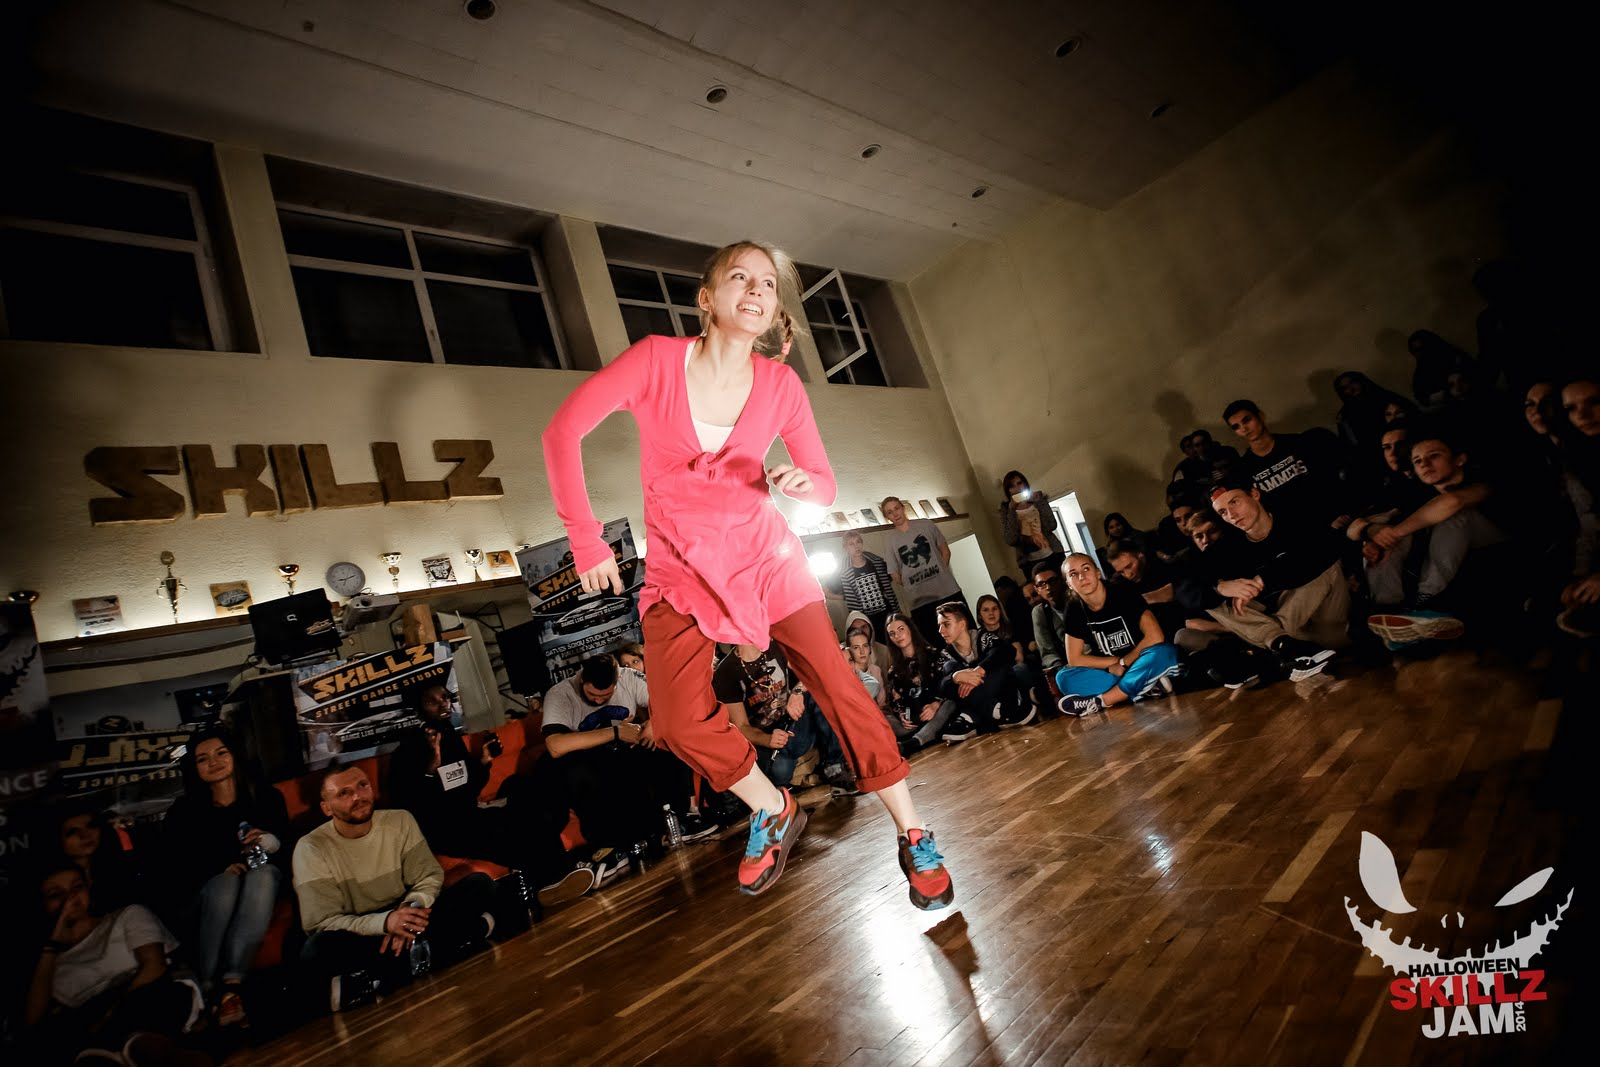 SKILLZ Halloween Jam Battles - a_MG_5565.jpg